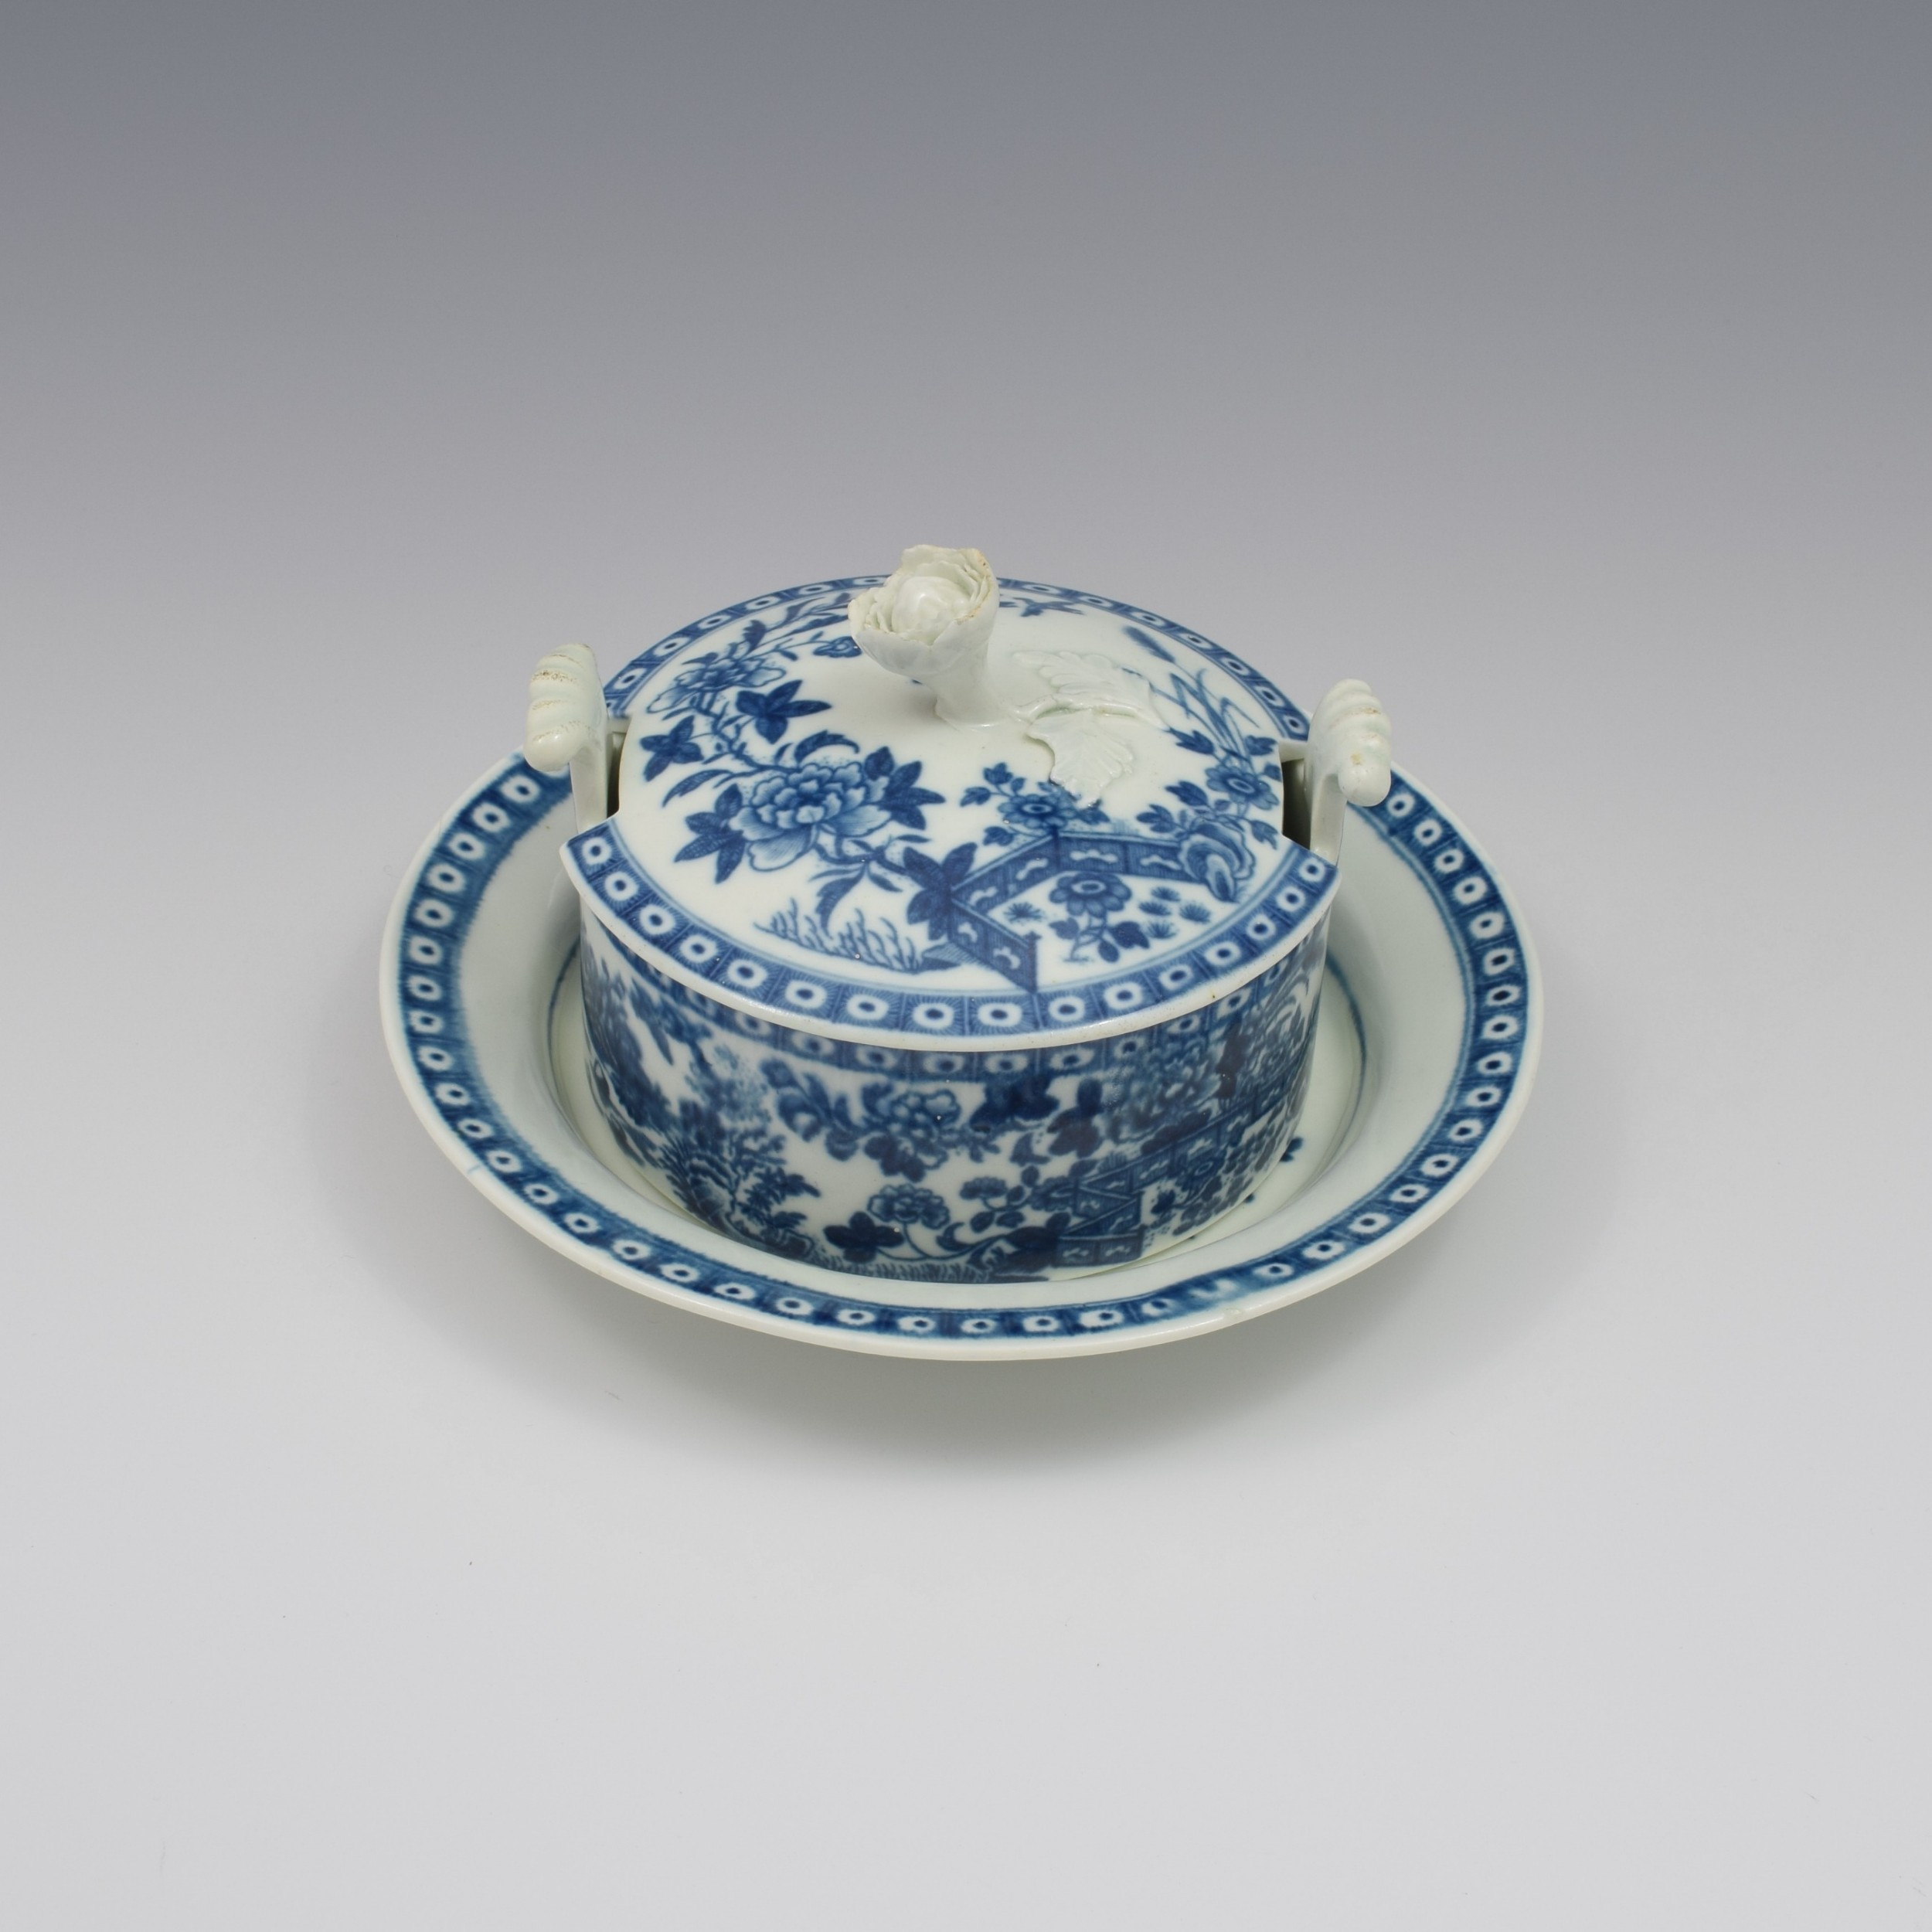 first period worcester porcelain butter tub stand fence pattern c1770